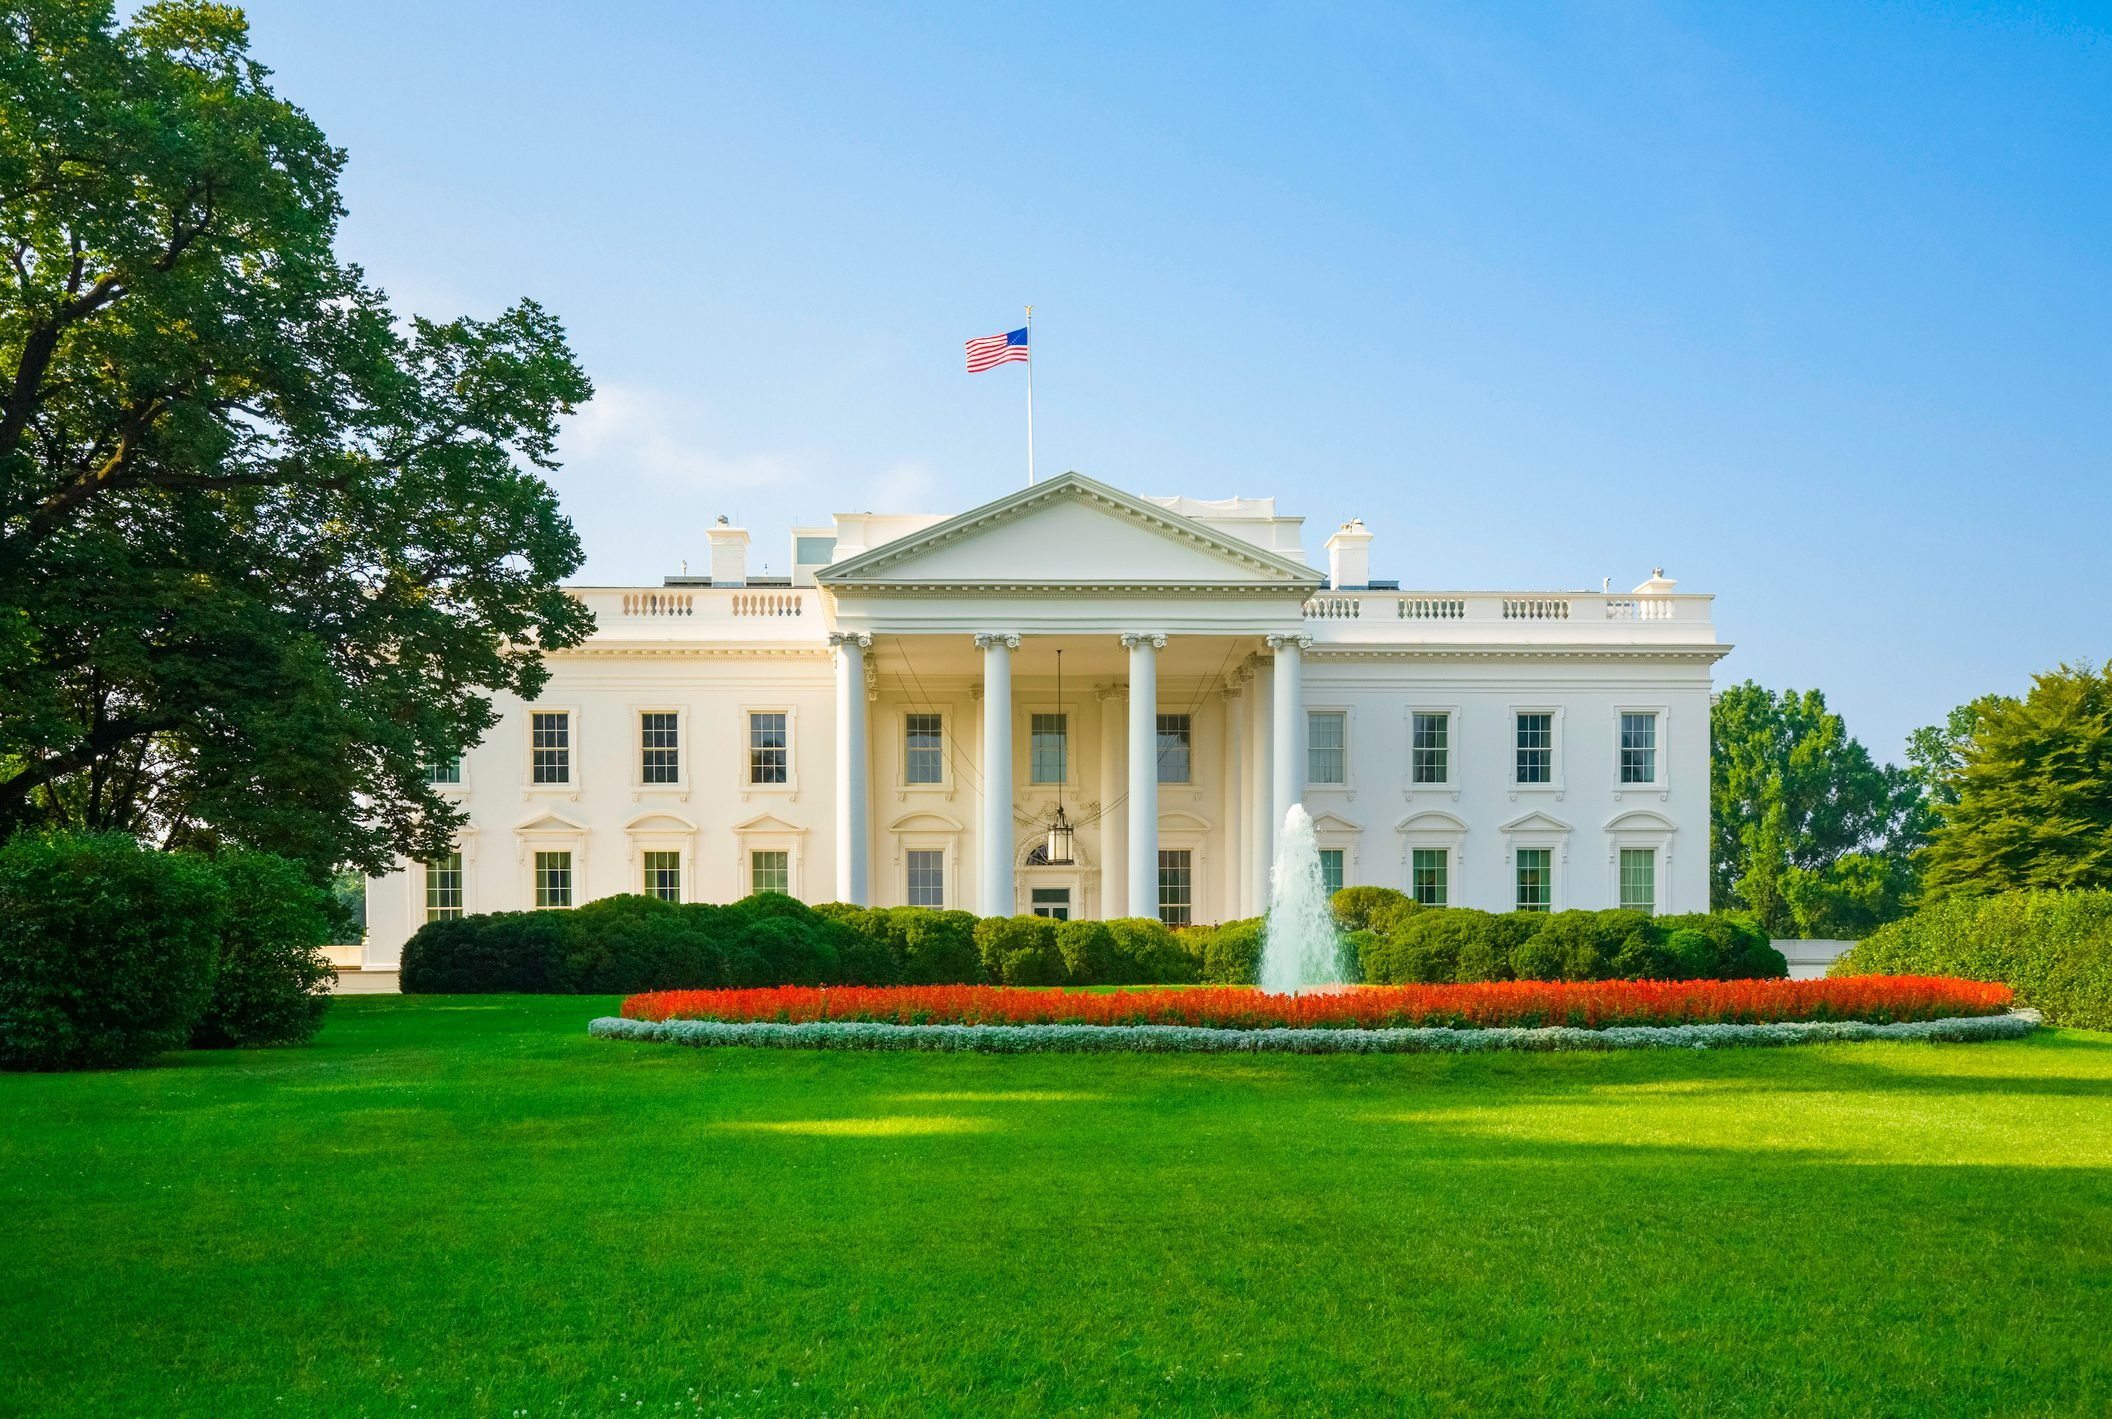 The White House, green lawn, blue sky, early morning light